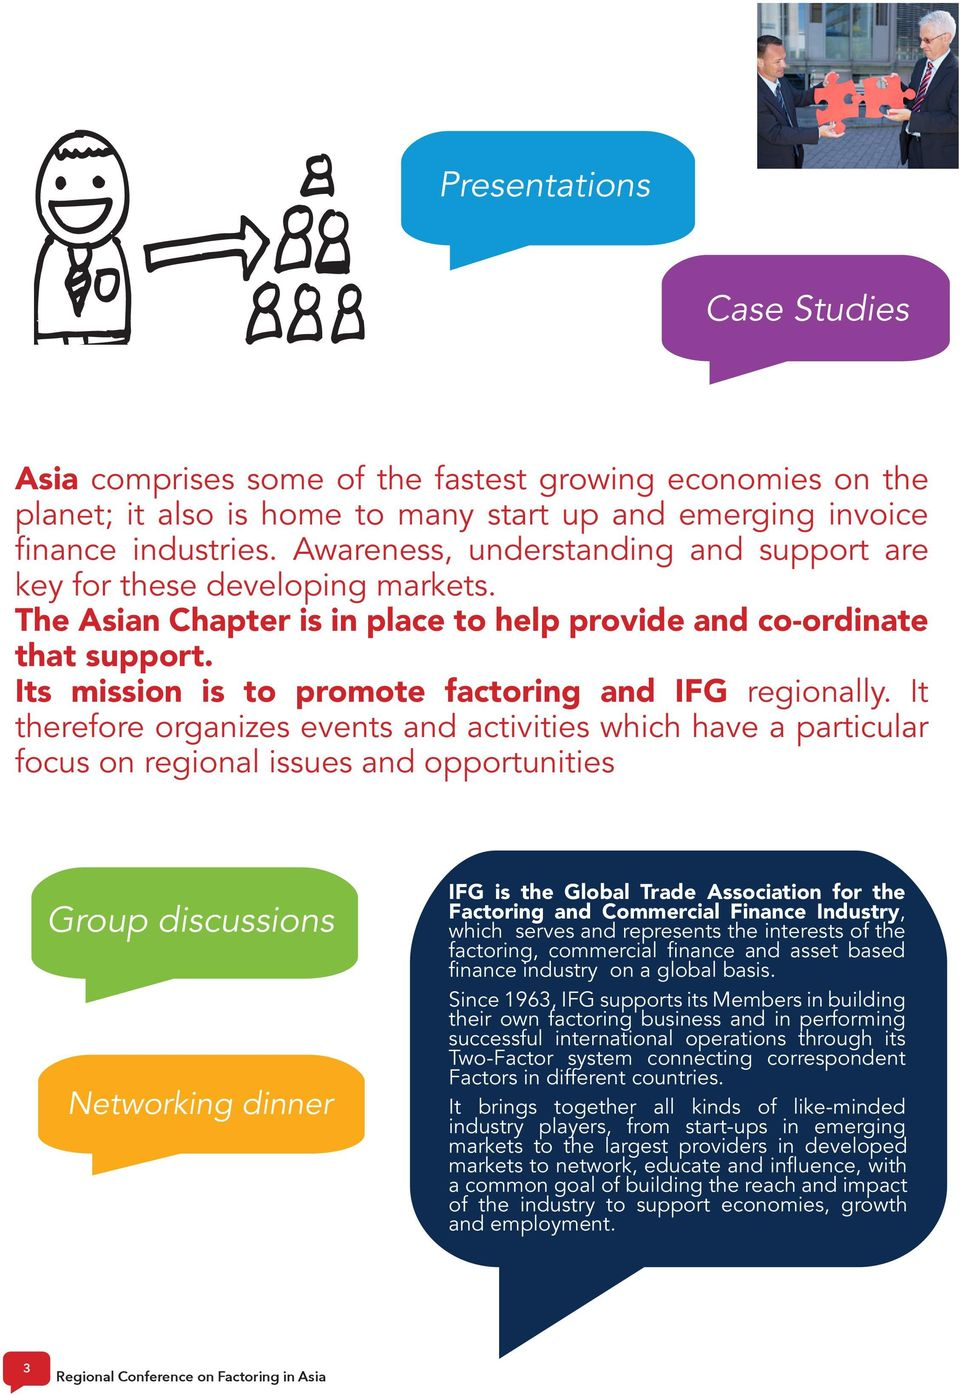 Its mission is to promote factoring and IFG regionally.